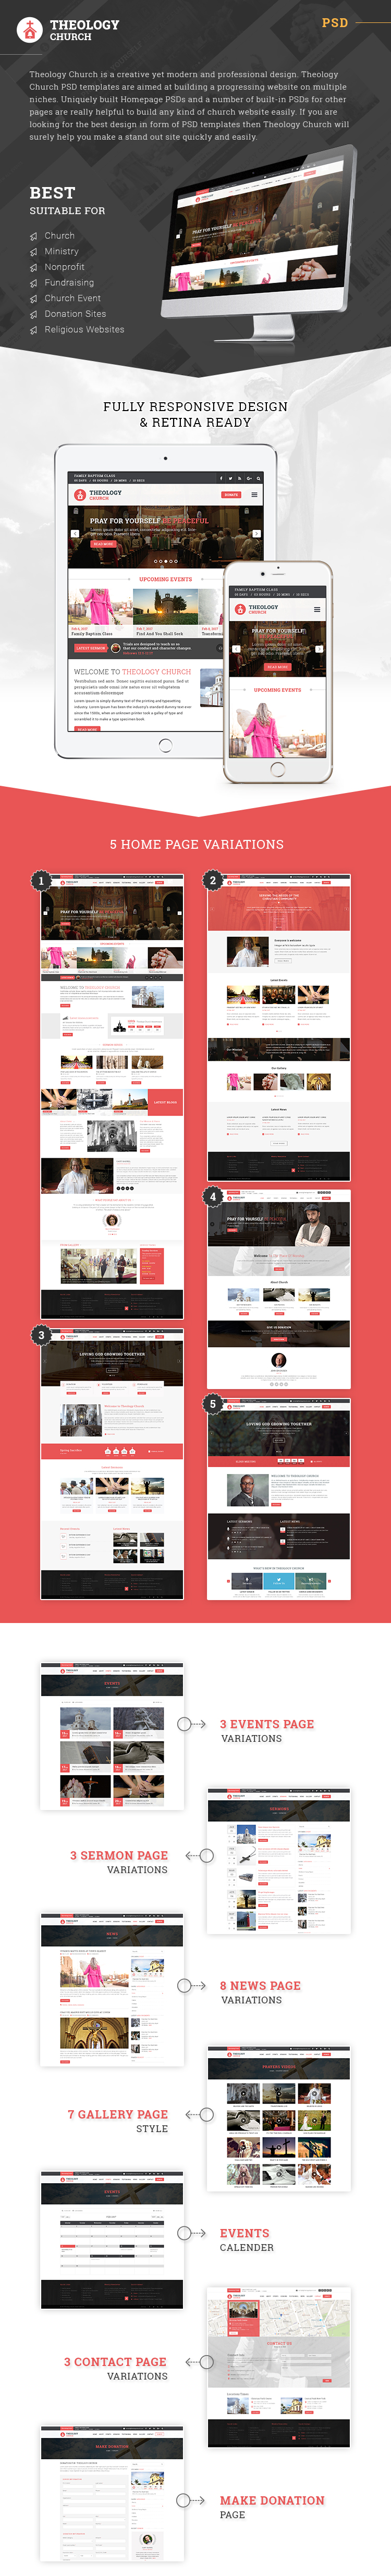 Features of free church psd template